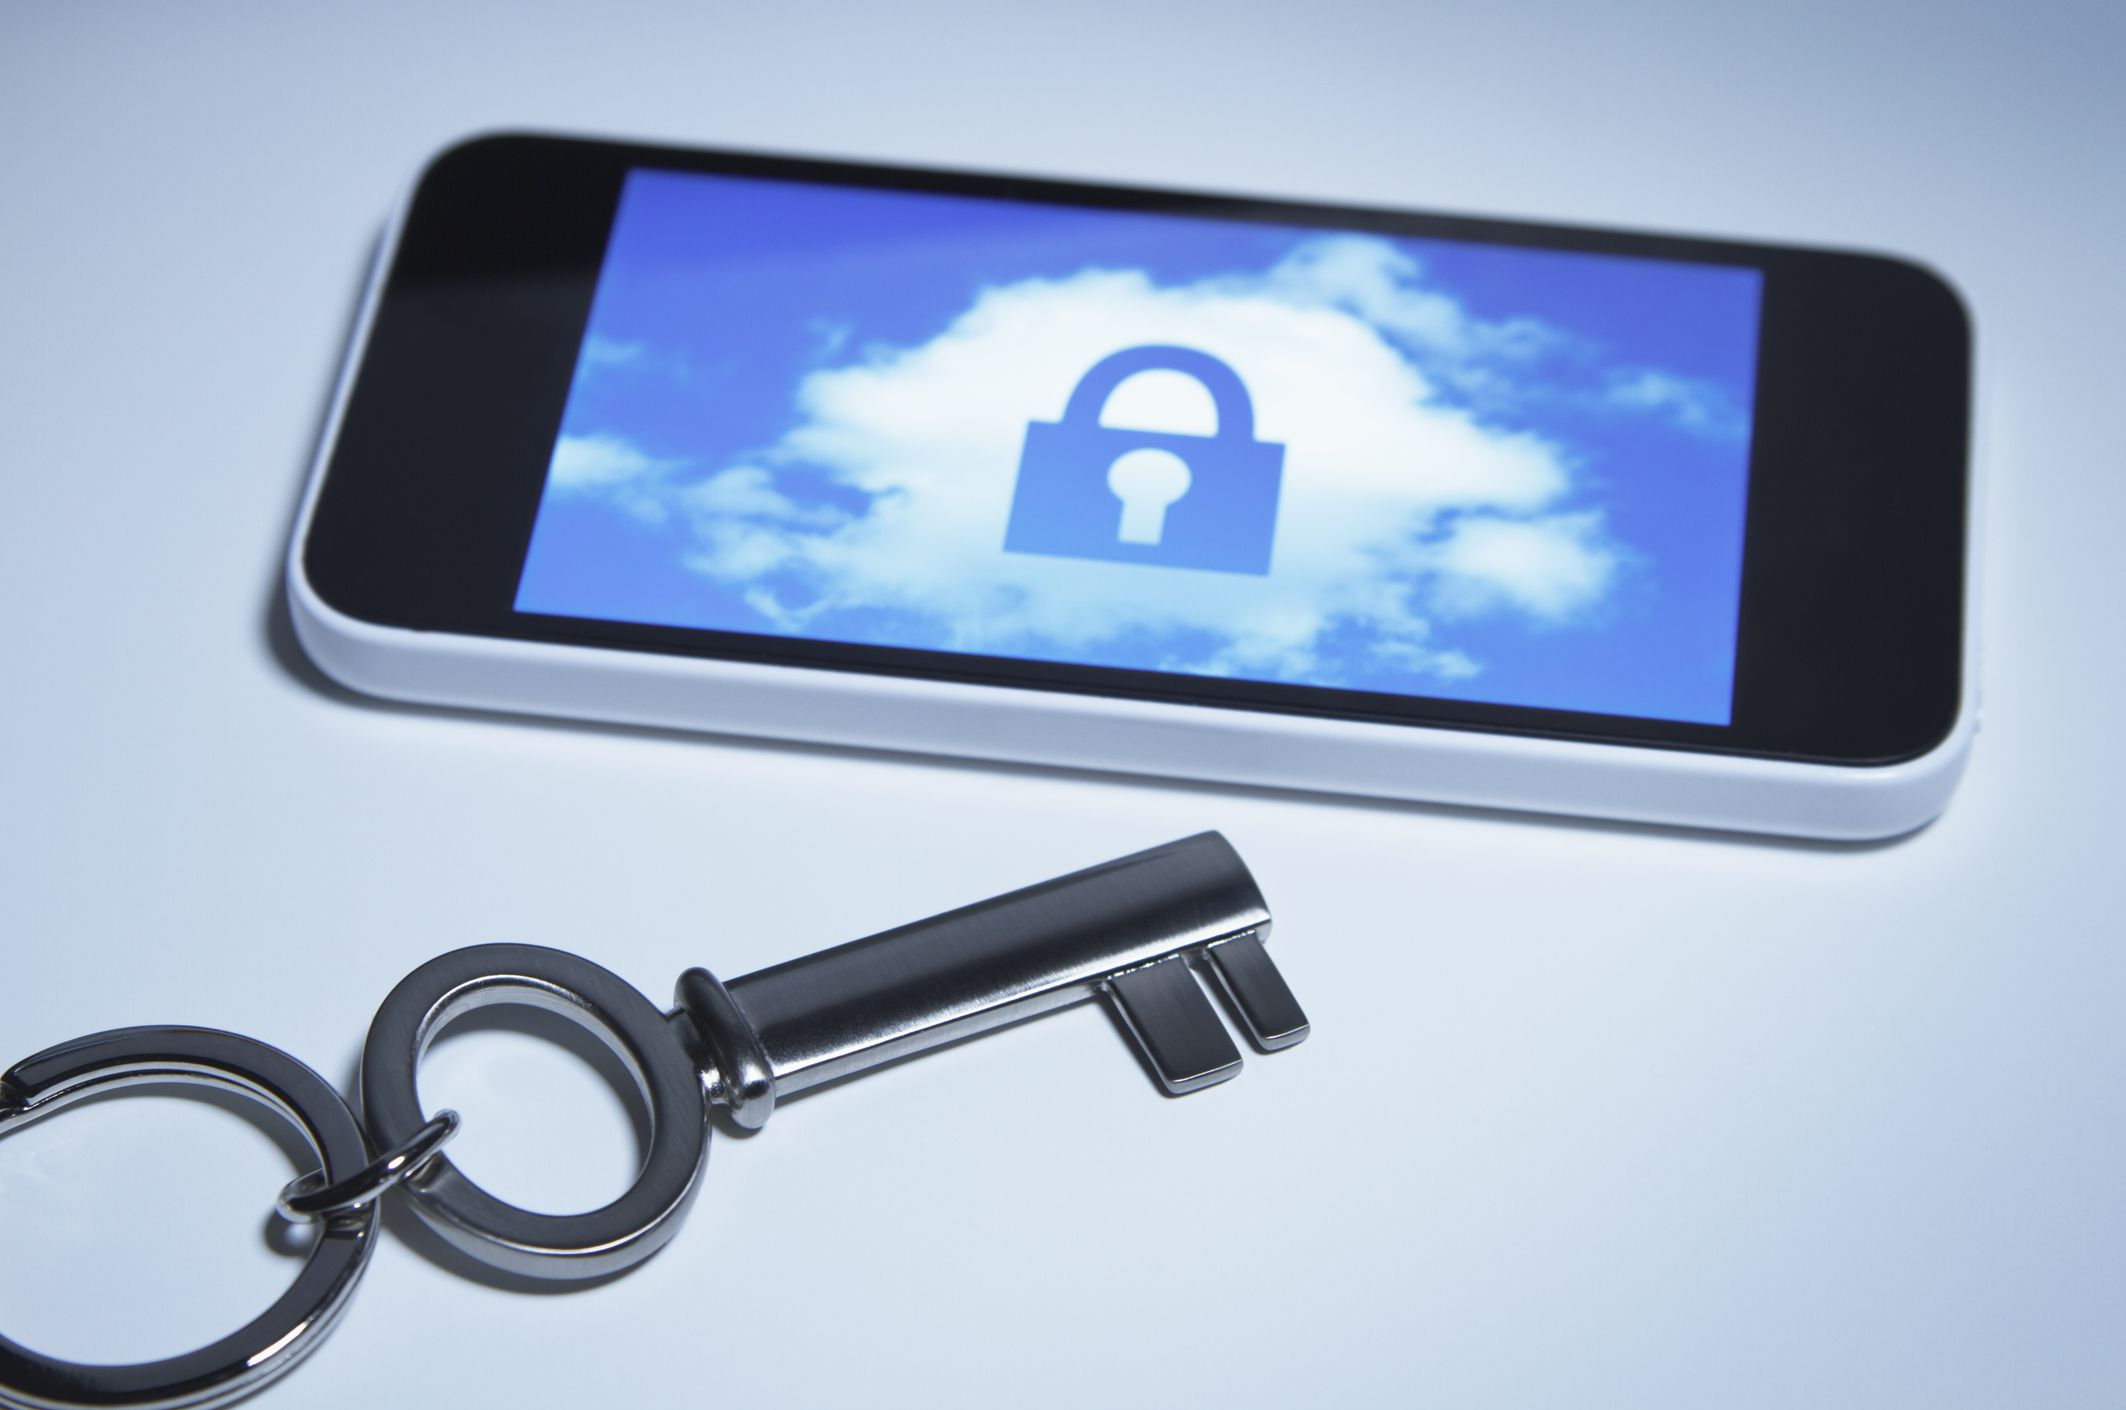 An image depicting iPhone security, showing a padlock on the screen of the phone with a separate security key.